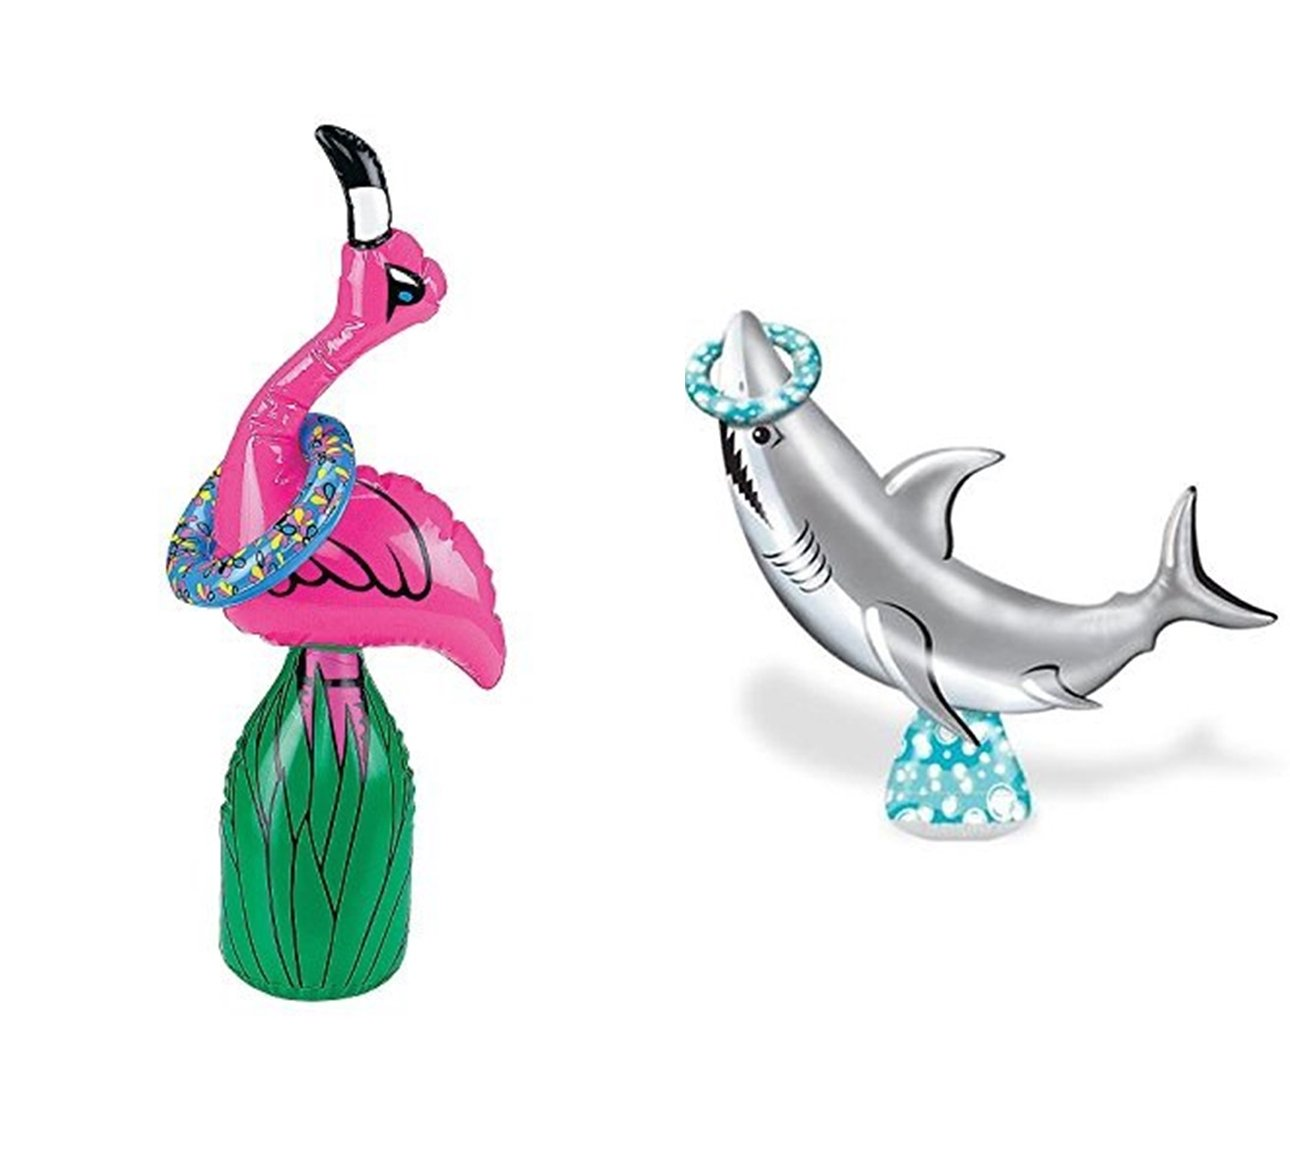 happy deals Inflatable SHARK + Inflatable Flamingo toss games - set of 2 inflatable Luau Pool party games